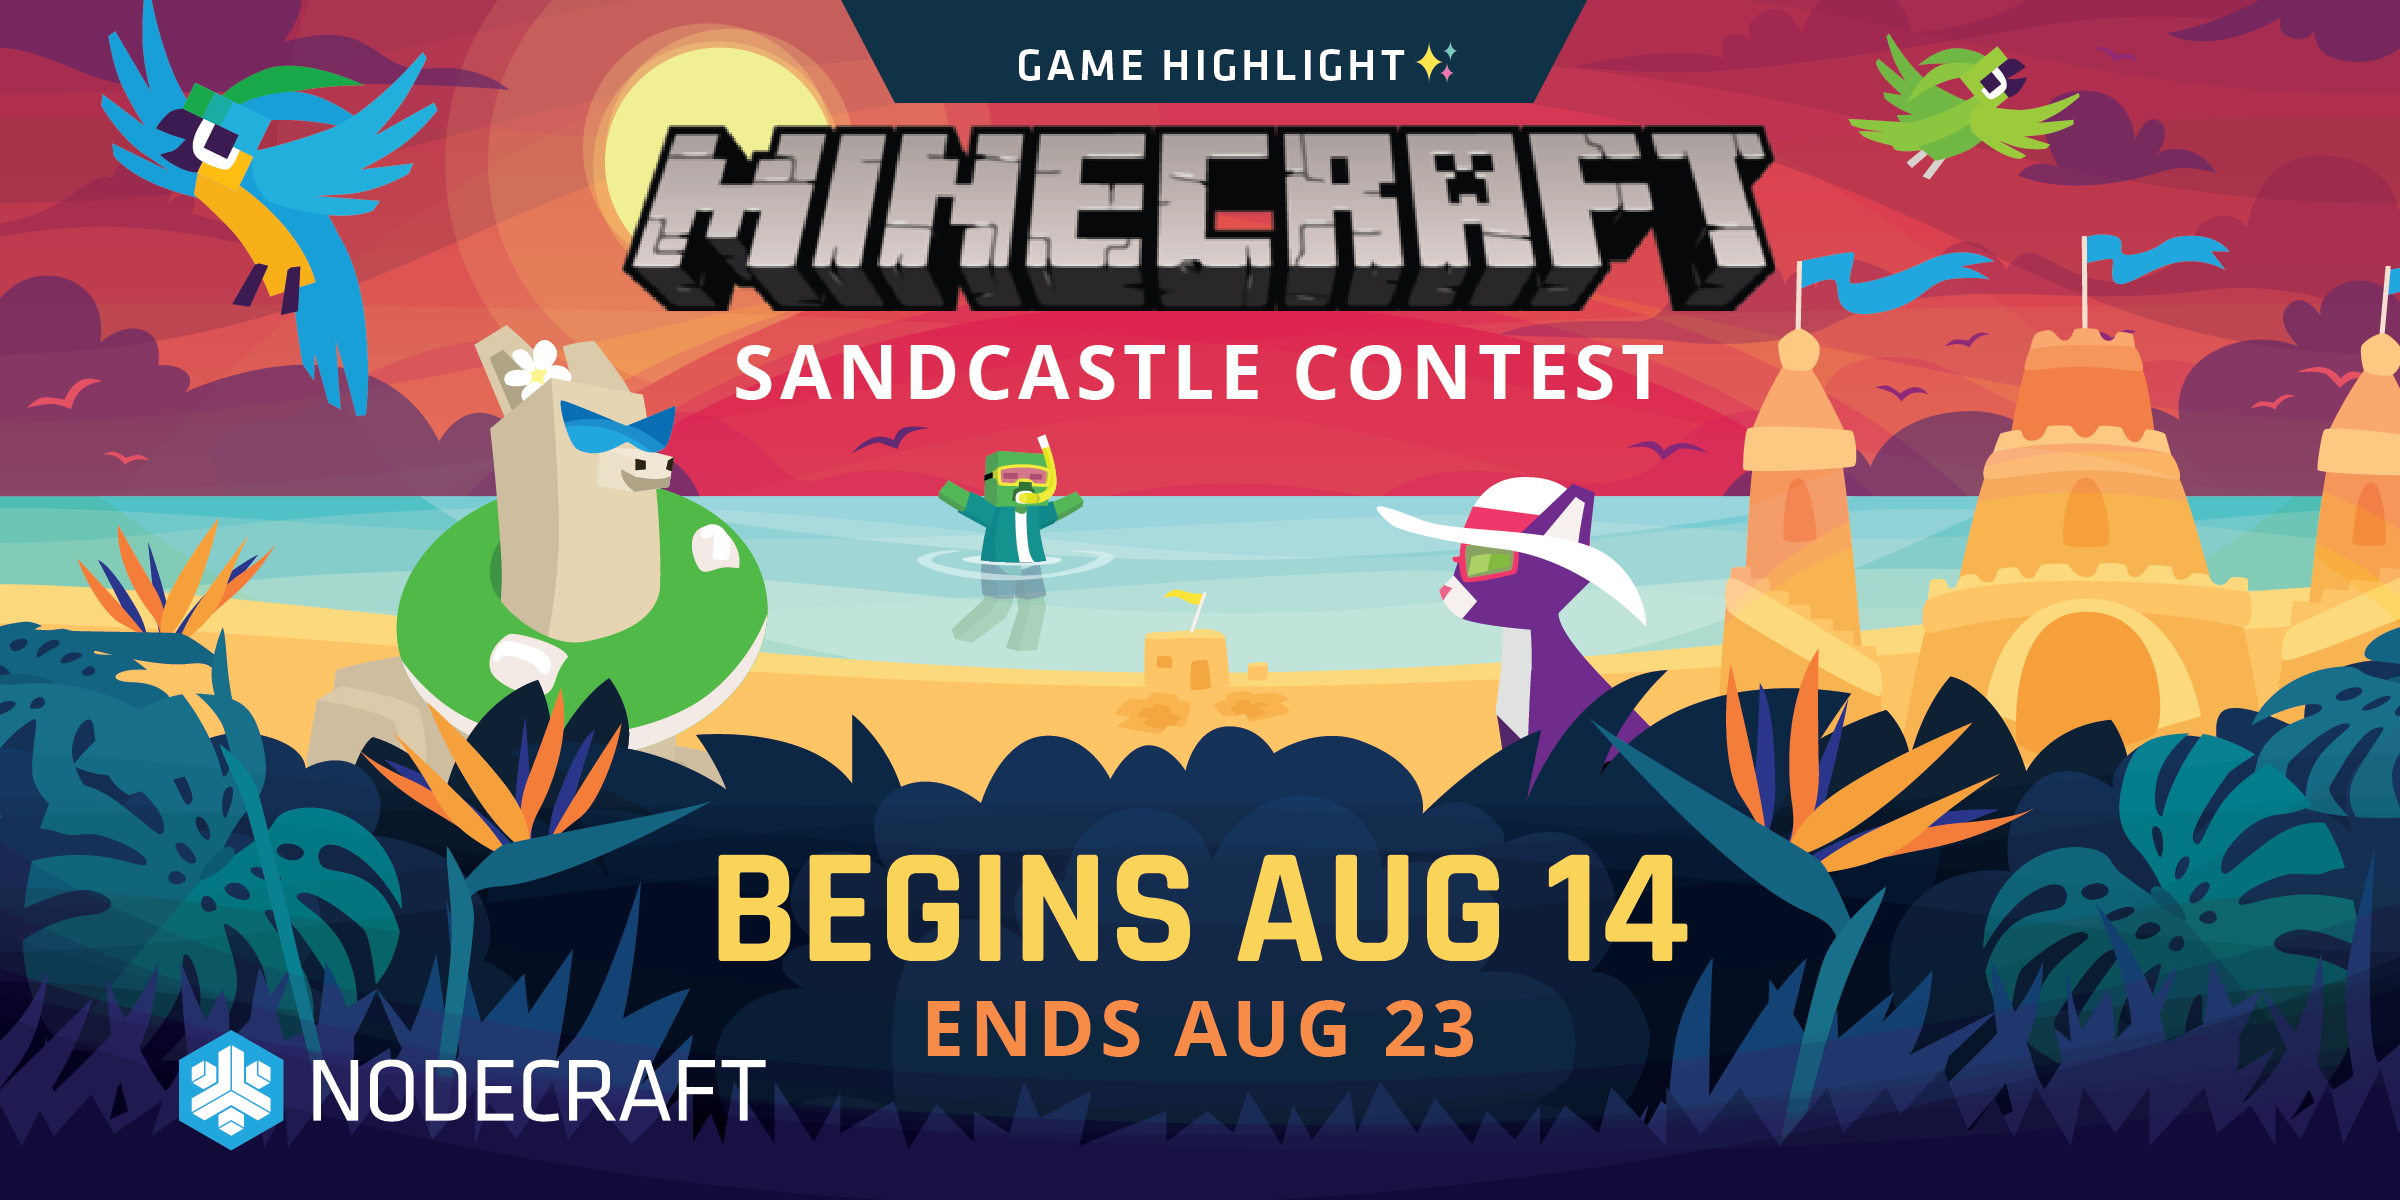 Game Highlight: Minecraft Sandcastle Contest image. Begins Aug 14th, ends Aug 23rd